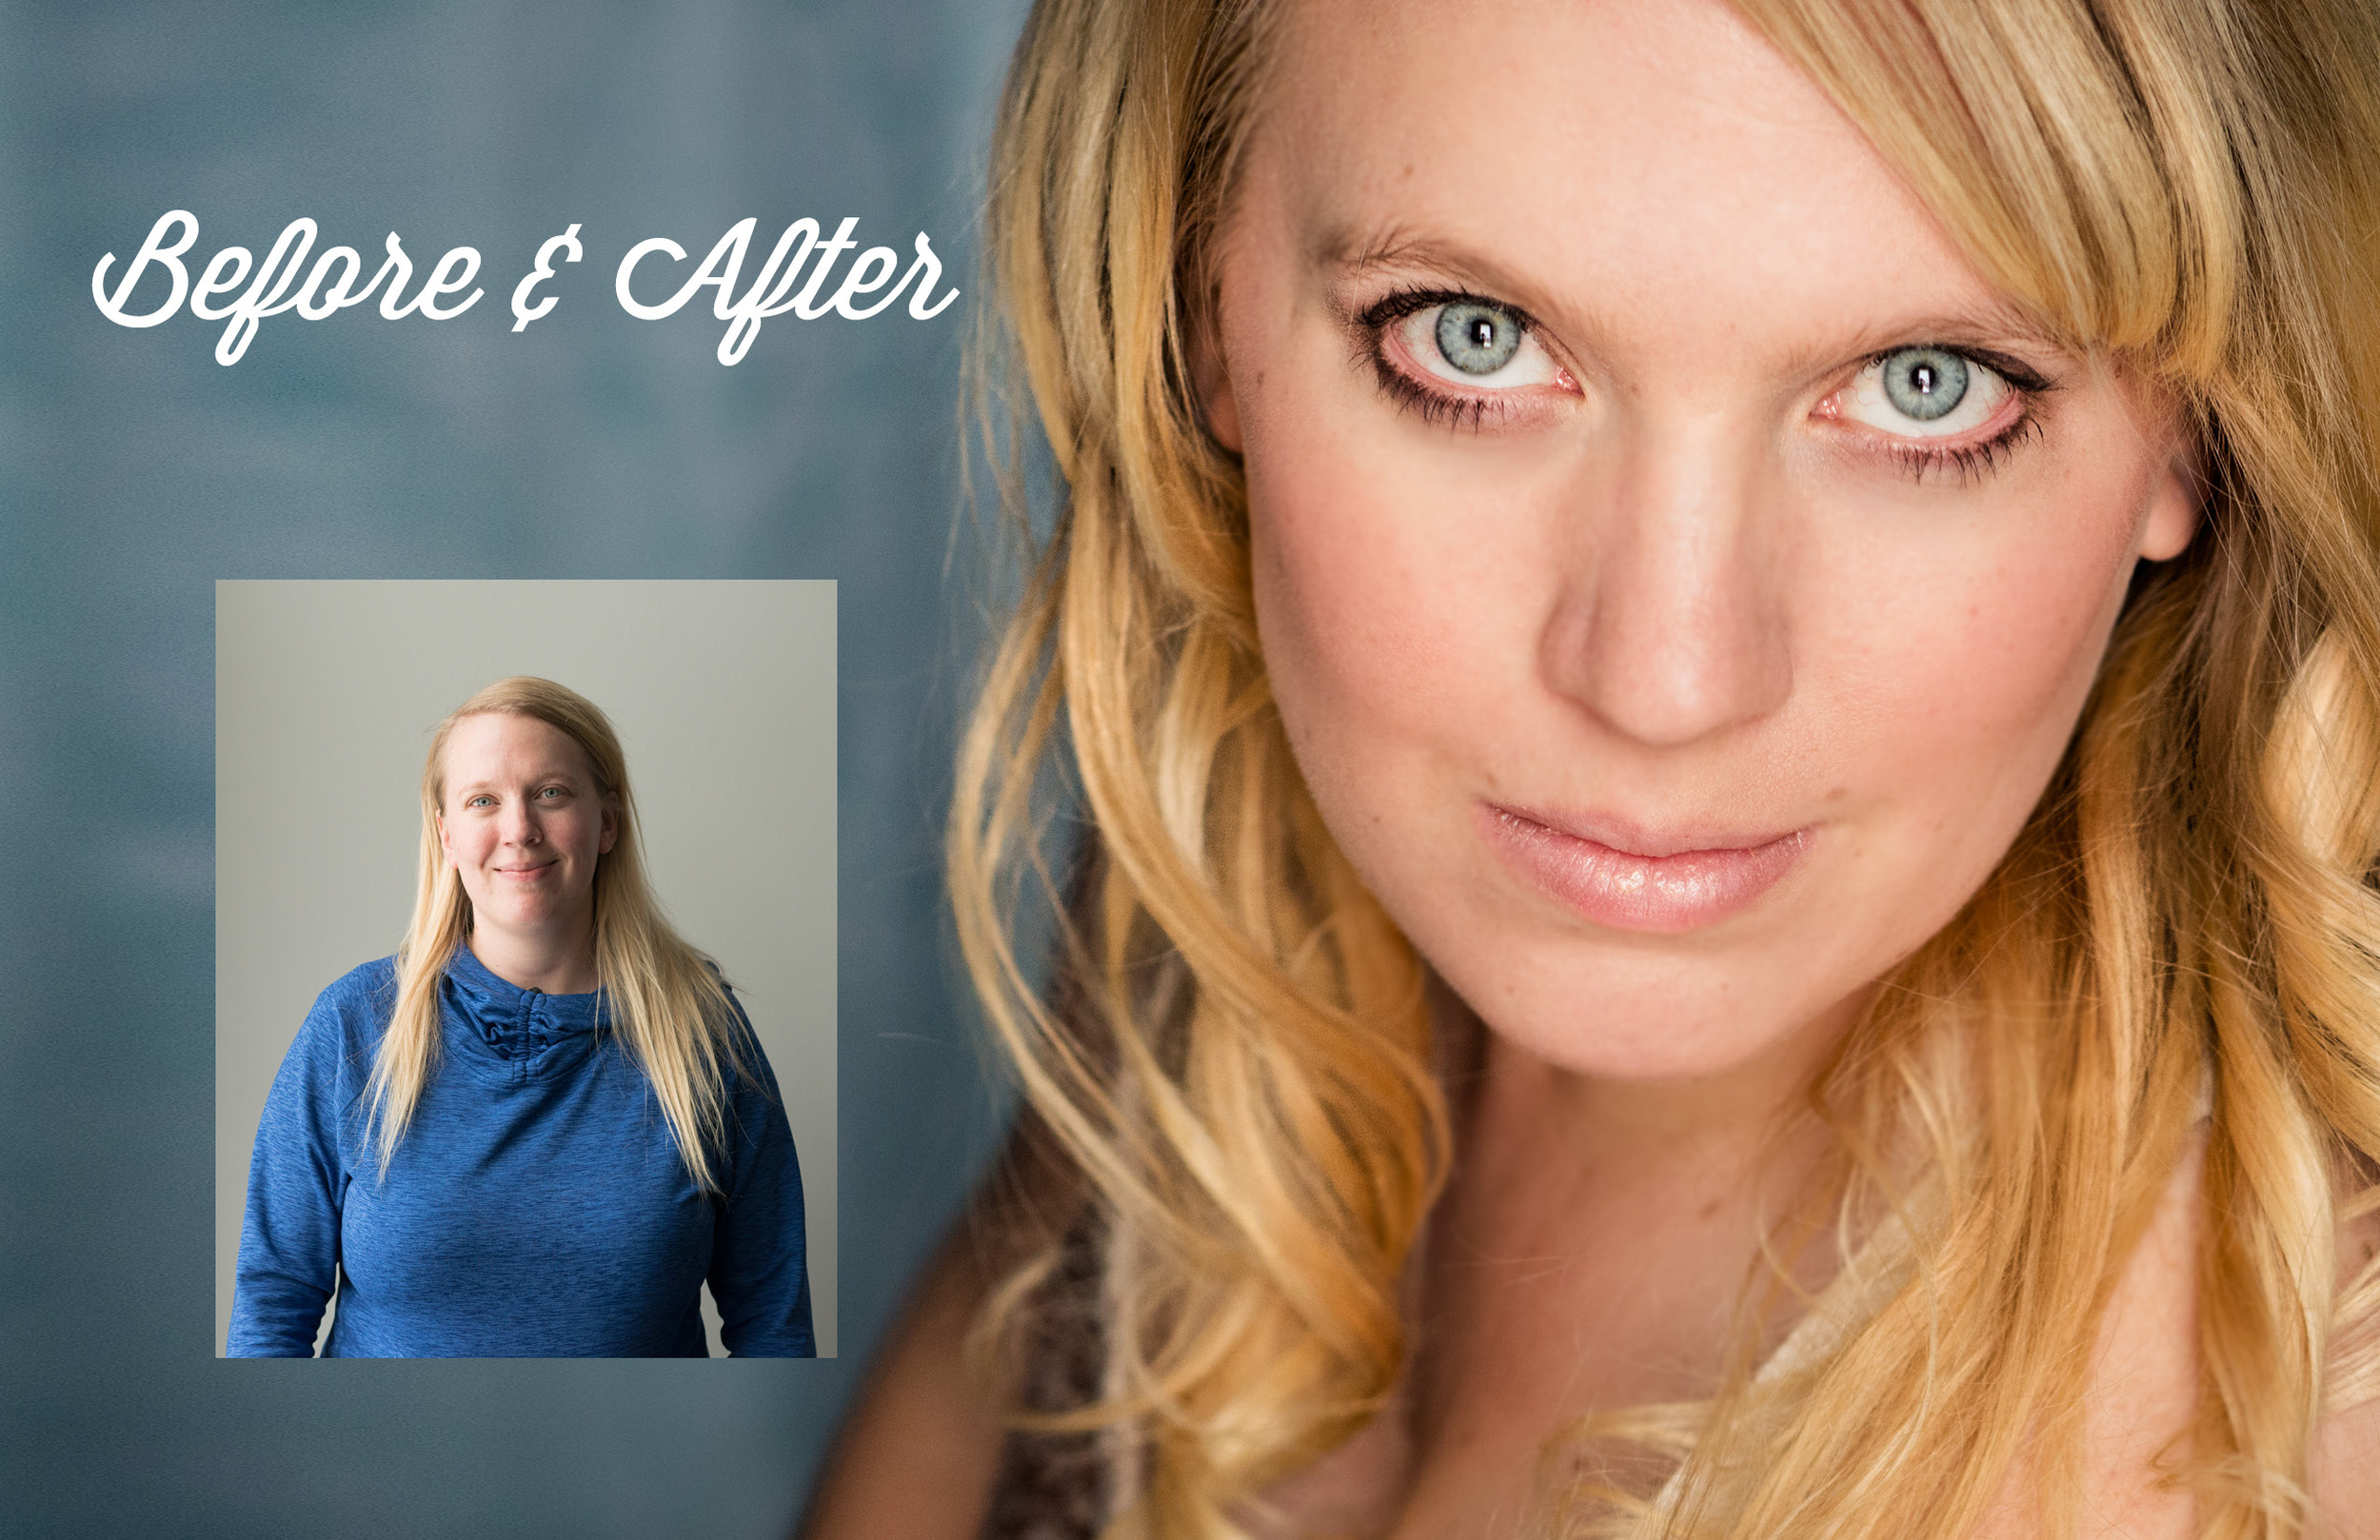 She'll be pampered with professional hair and makeup, and even a massage! (Above: before, and after hair, makeup, and professional photos.)